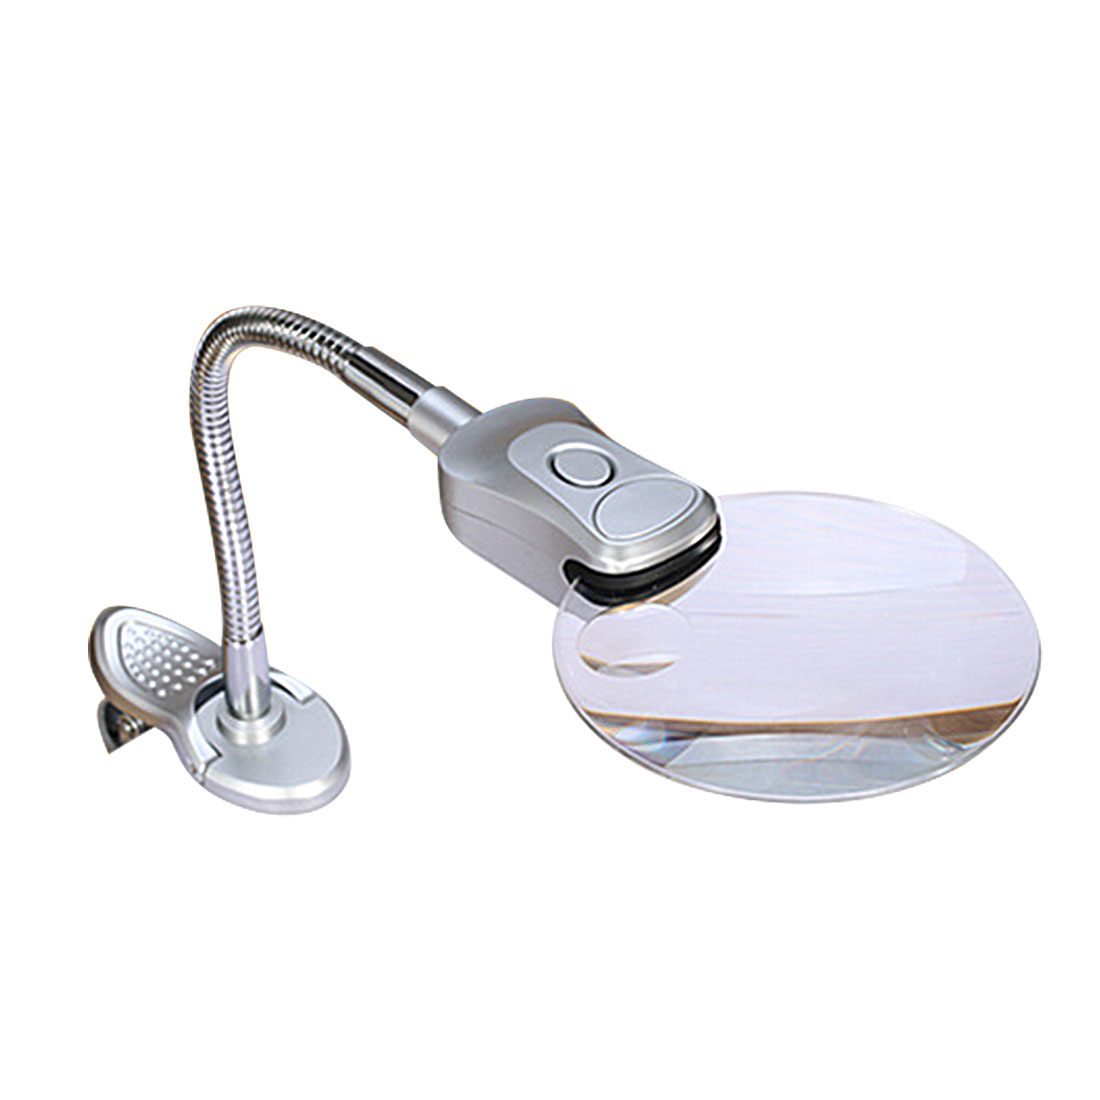 Clip-on Desk Table Magnifying Glass 90mm With 2 LED Table Magnifier Lamp Magnifier